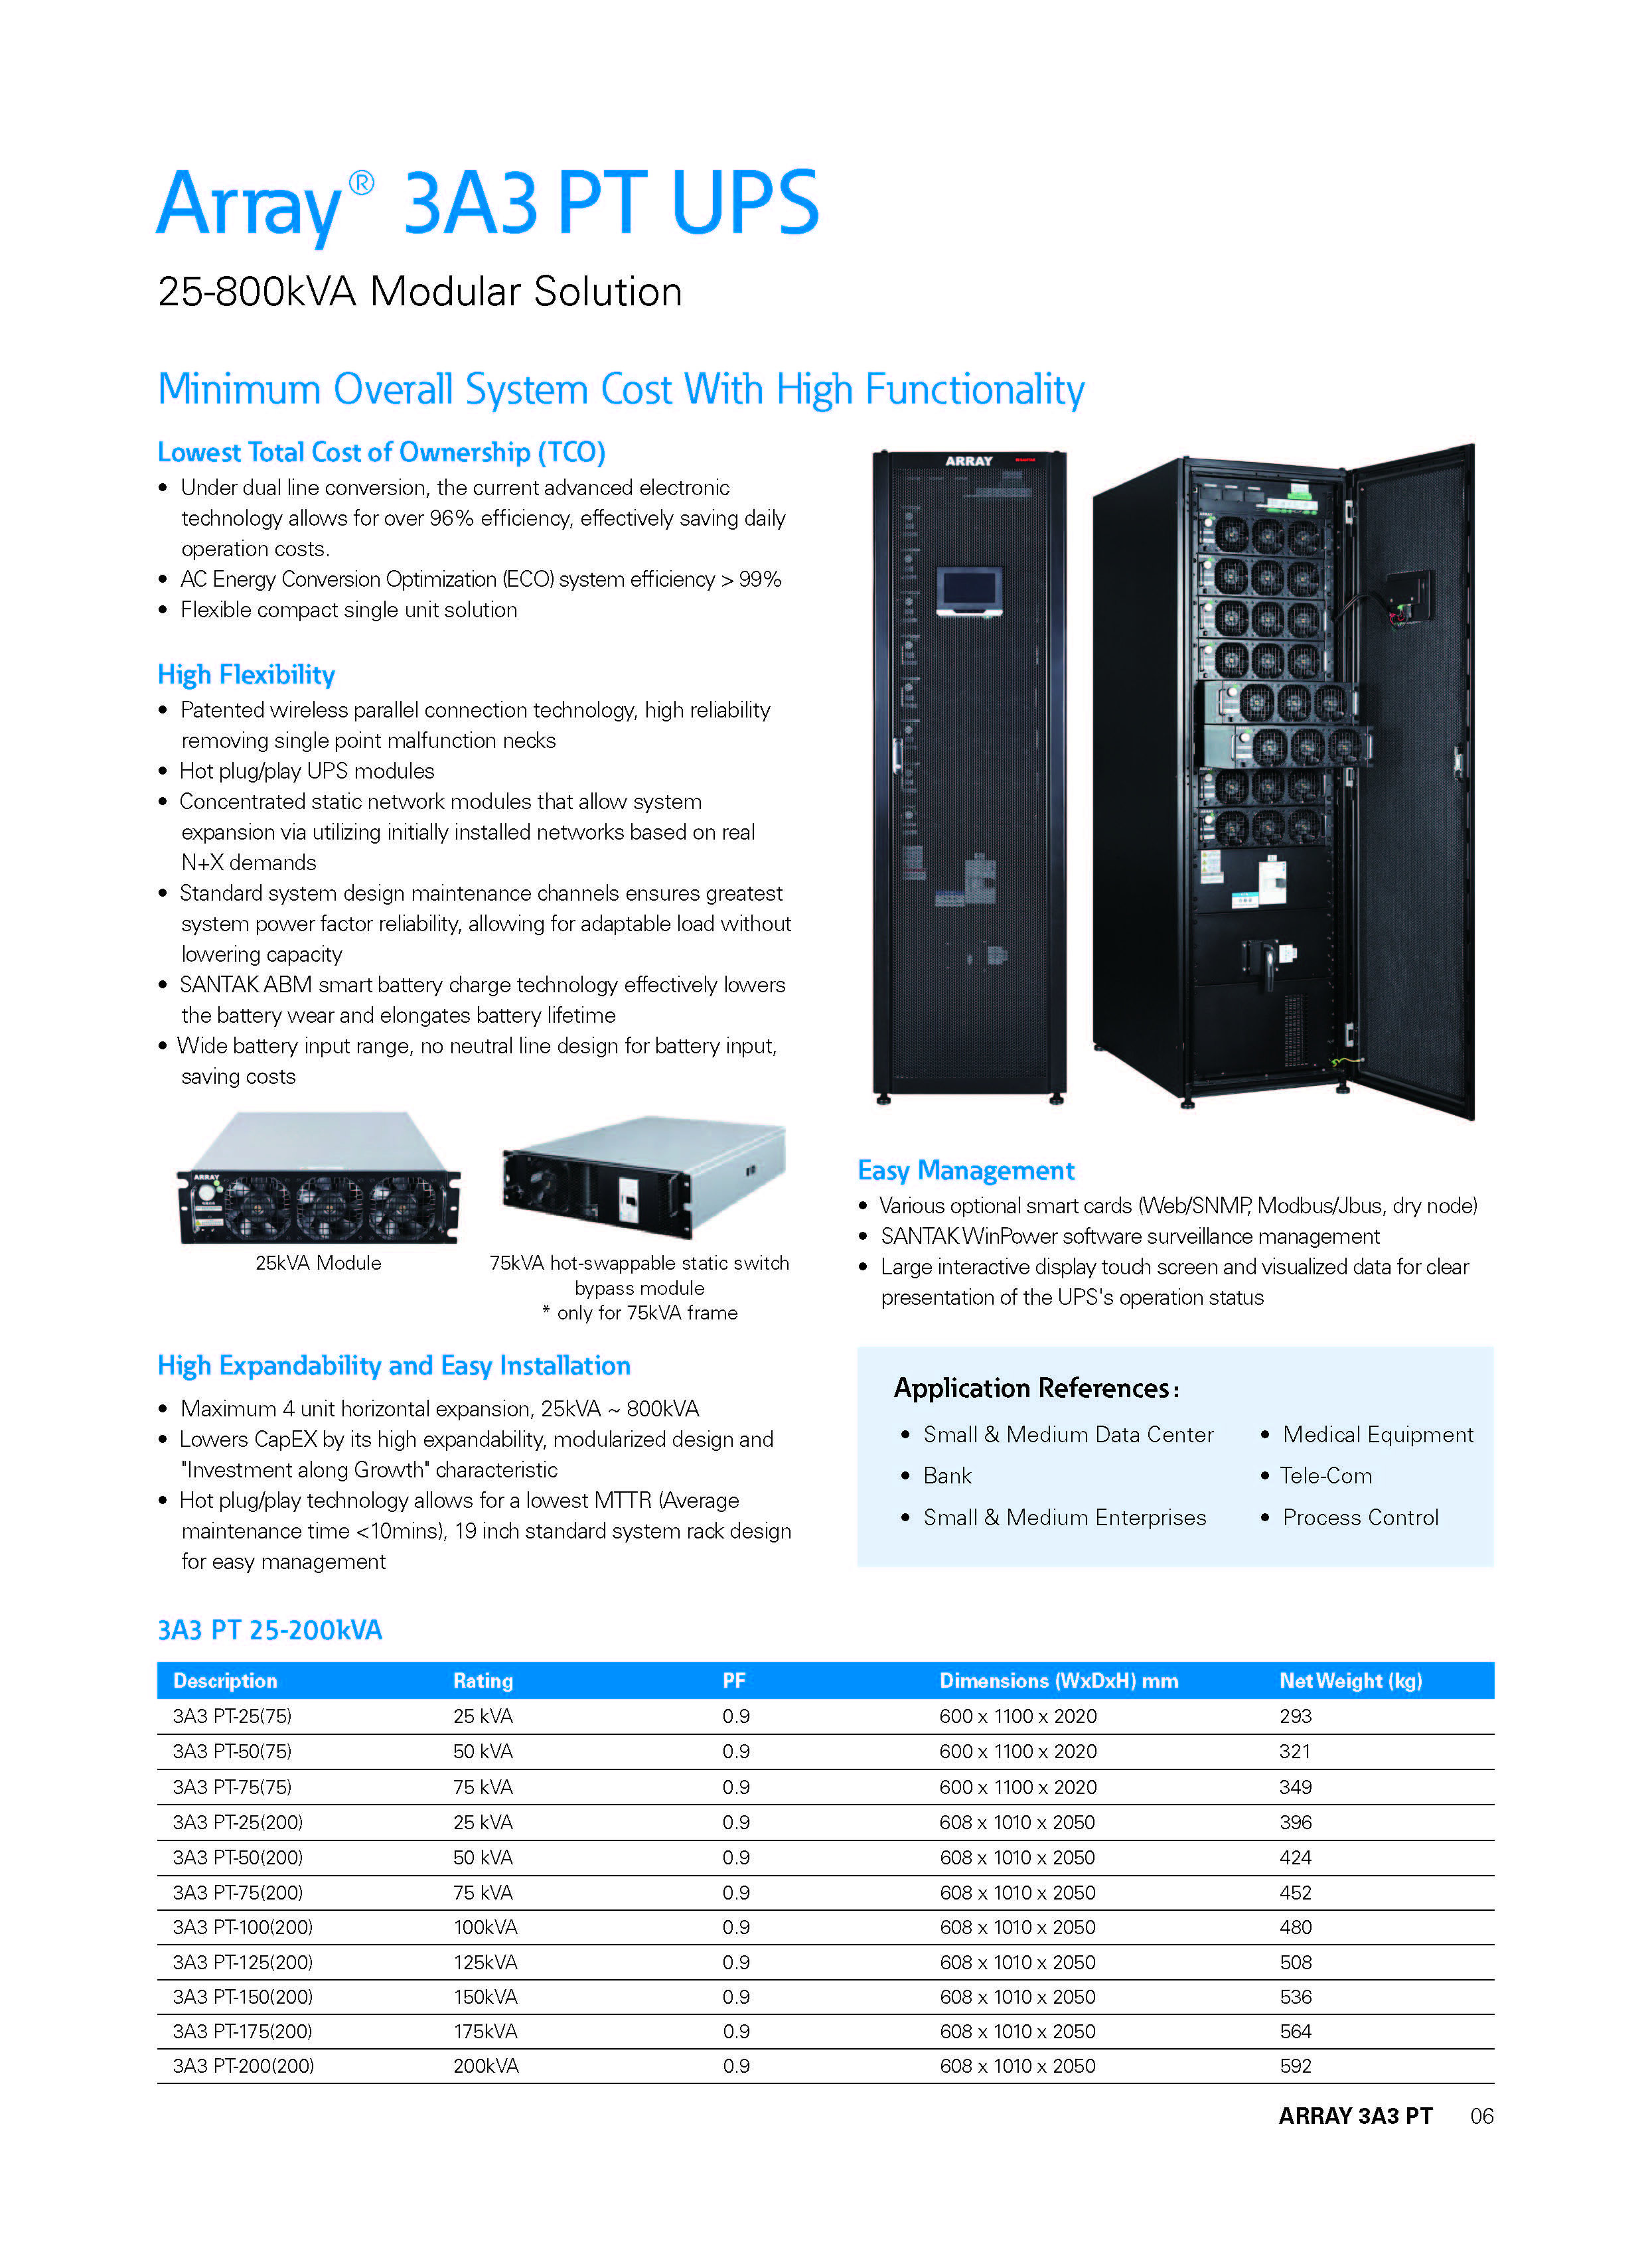 SANTAK Modular UPS power System China Factory Price 3phase 200KVA 250kva online industria with Hot plug/play technology